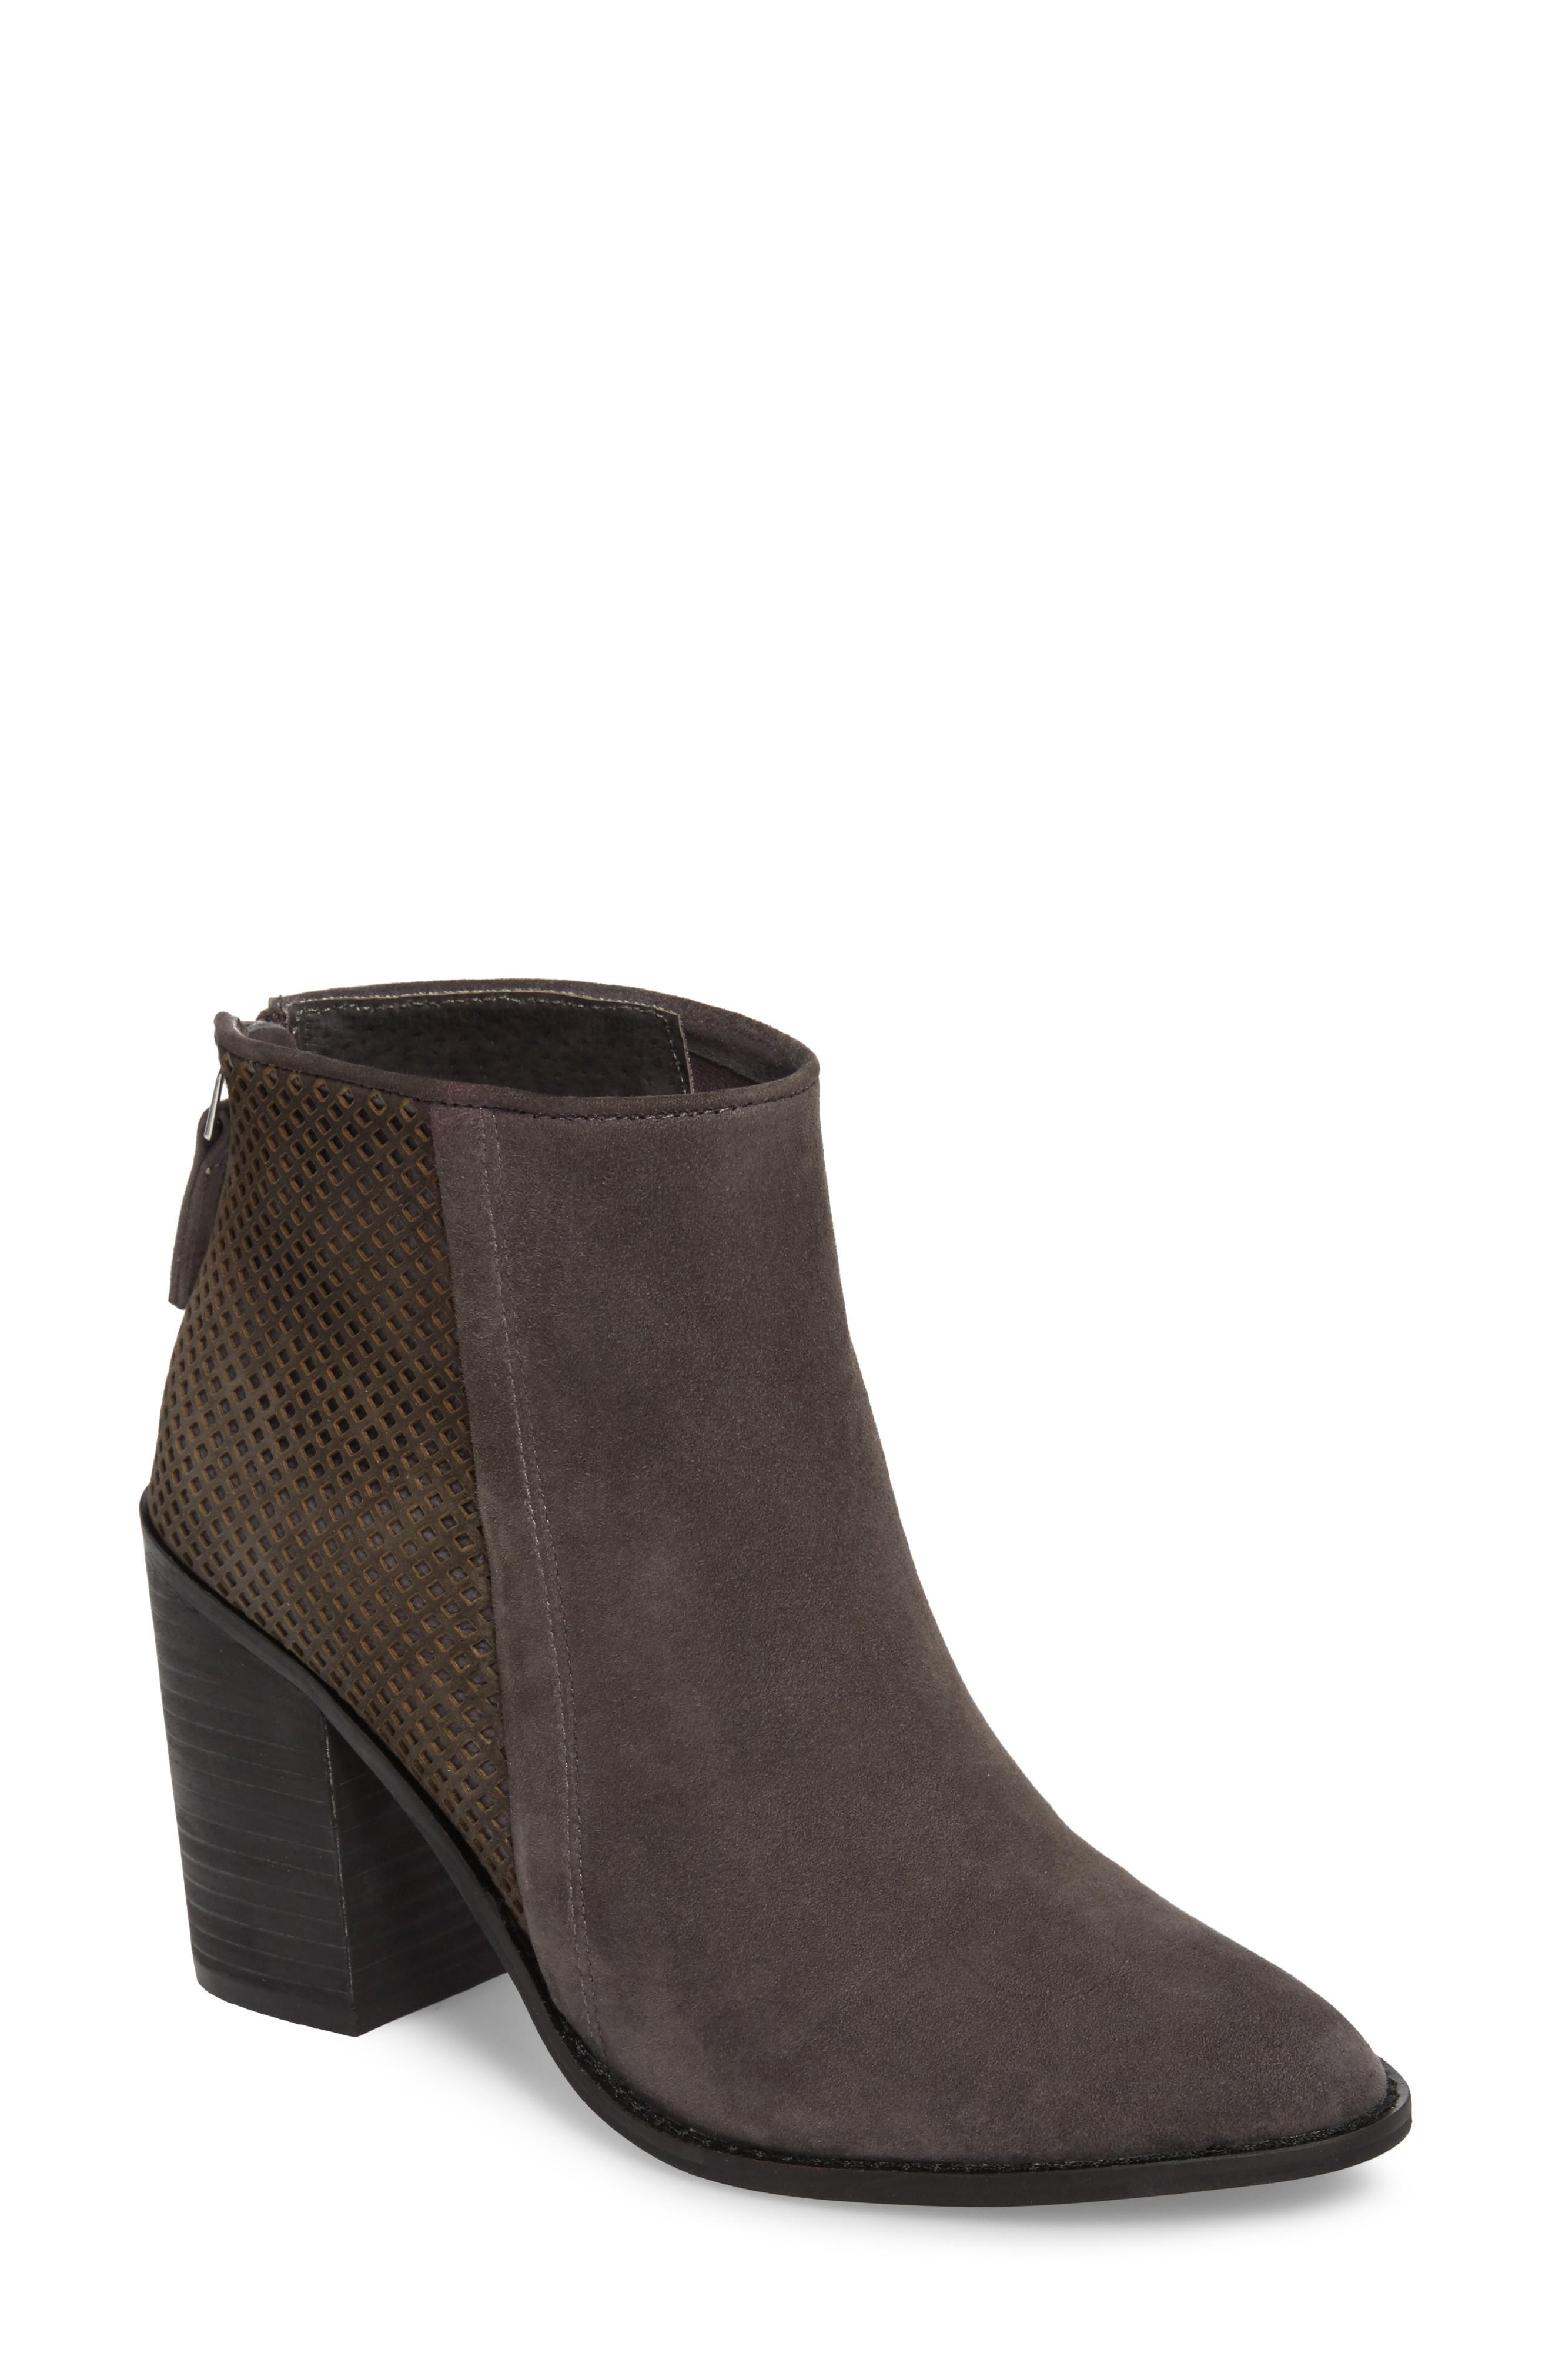 3bc561fd592 ... almond-toe bootie finished with allover geometric cutouts at the back  panels. Style Name  Steve Madden Replay Bootie (Women). Style Number   5513073.